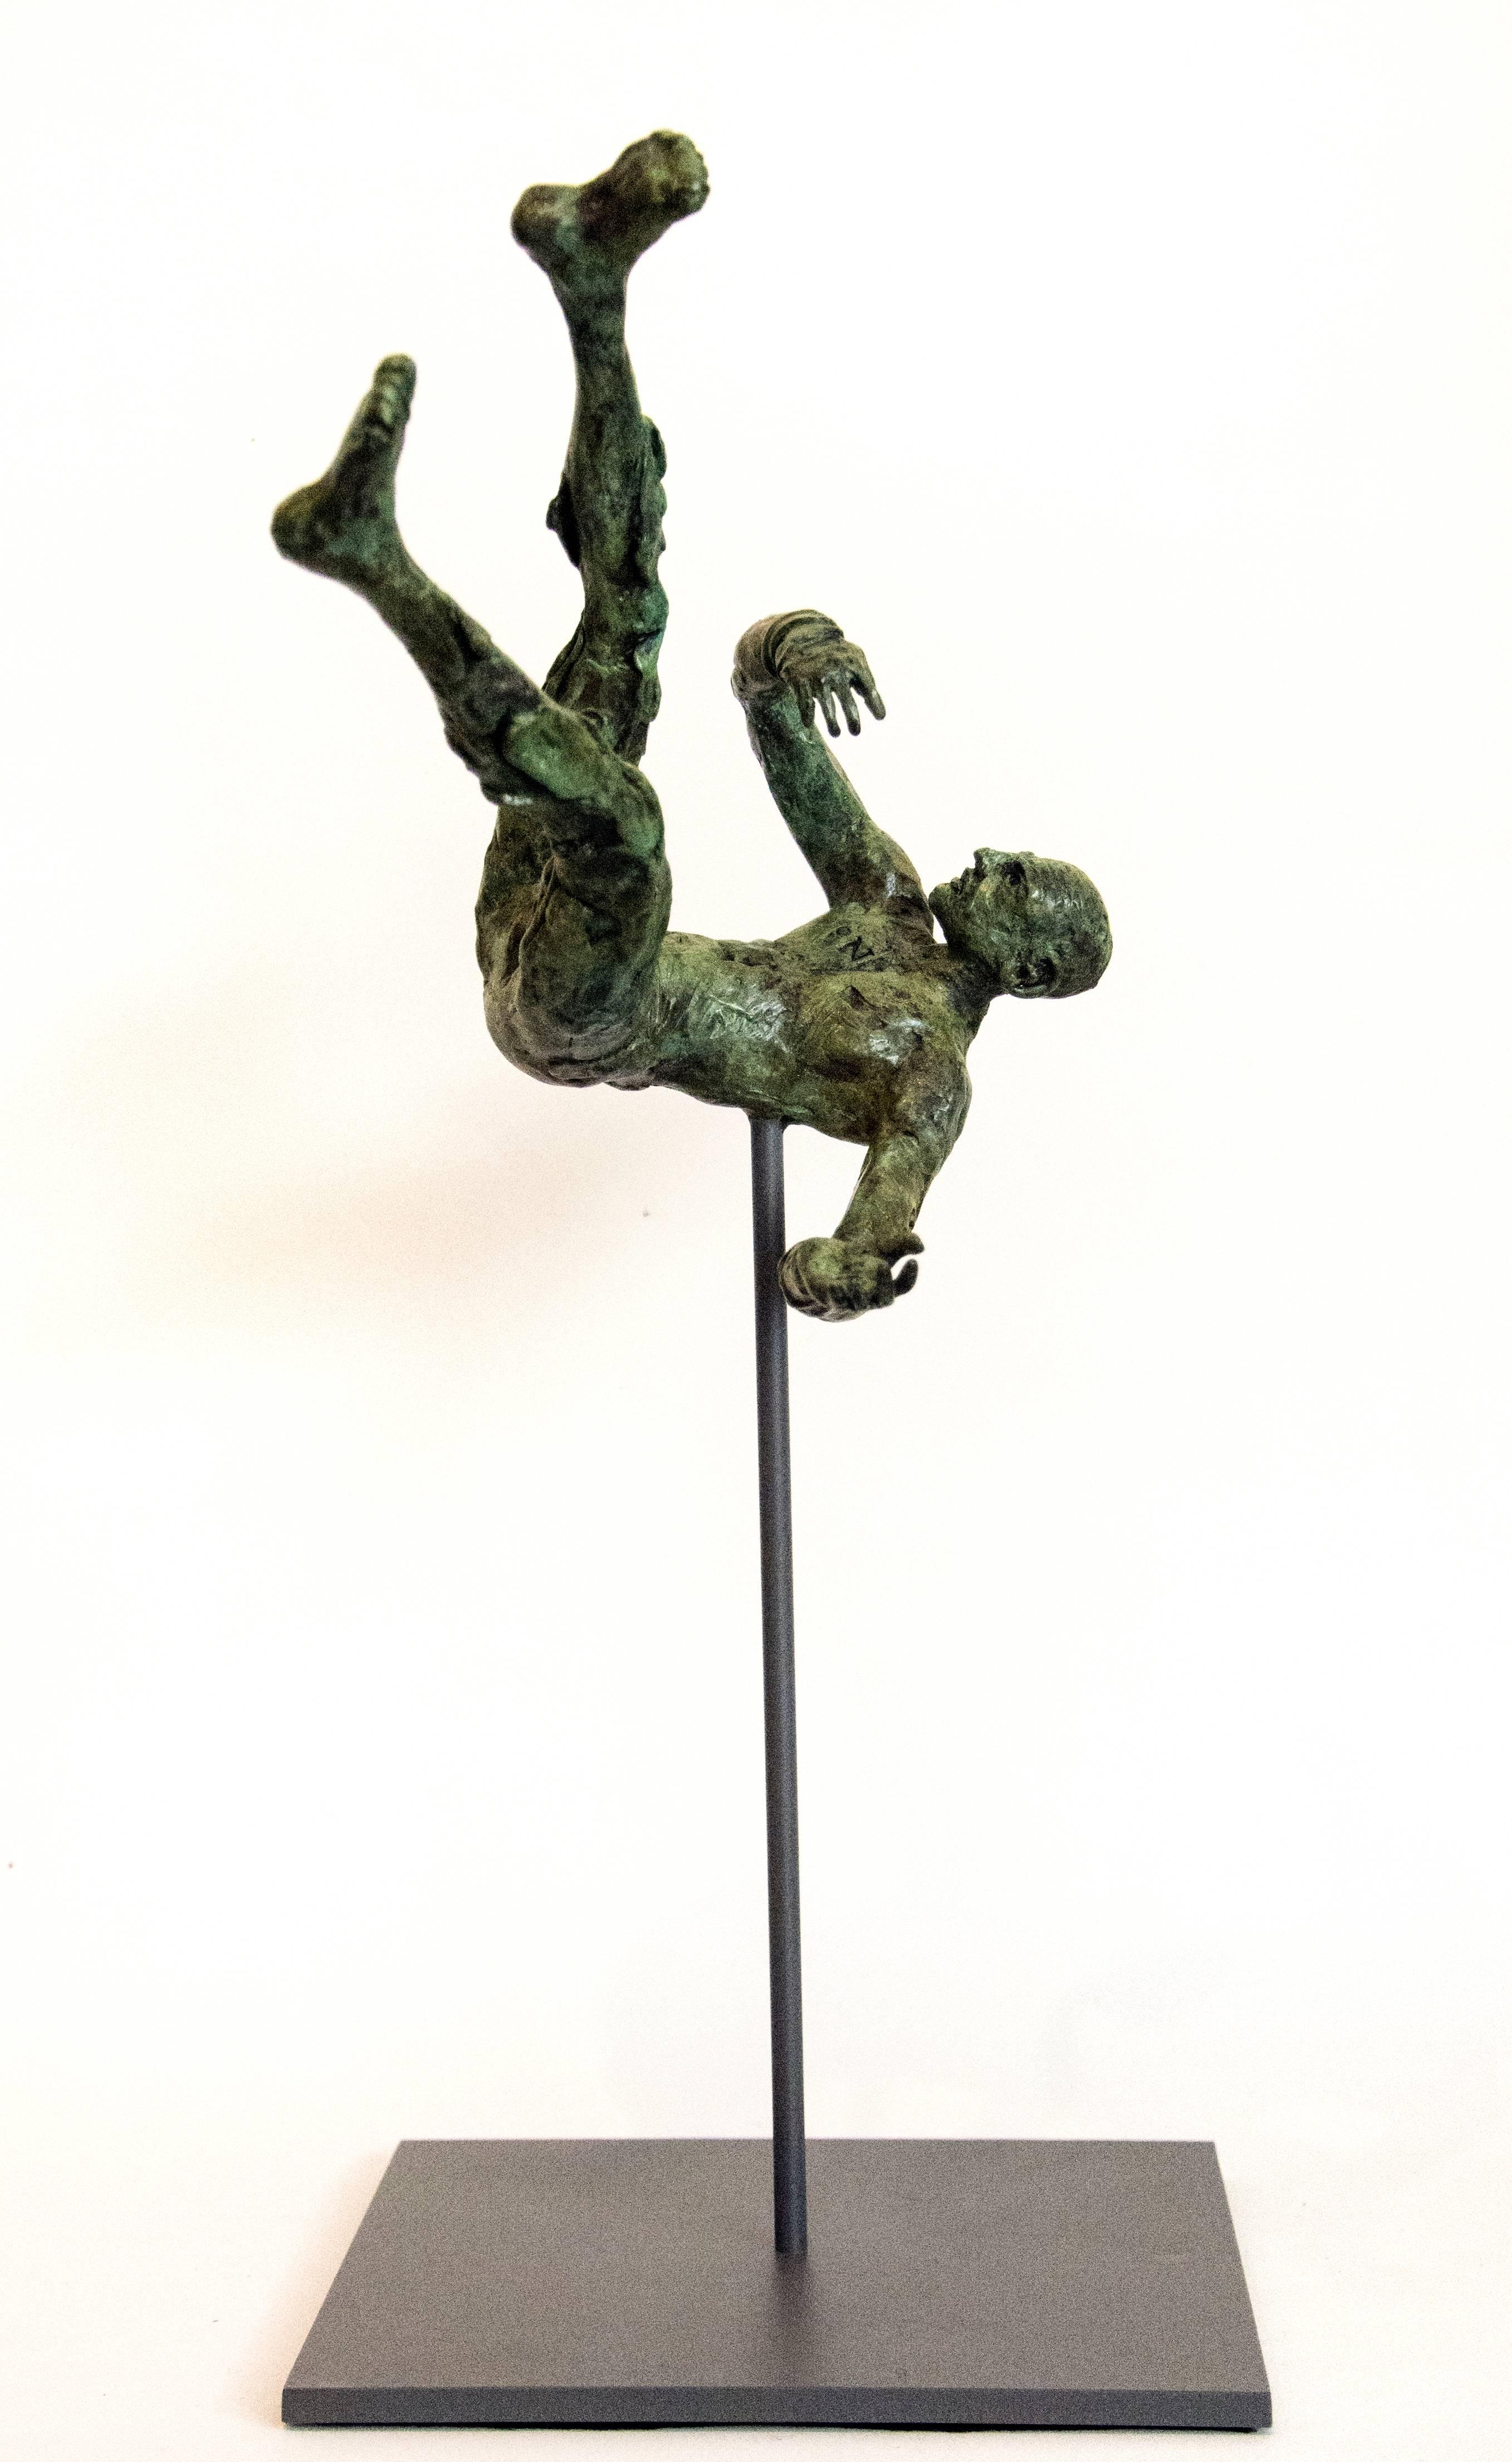 Equilibrium No 3 - small, lively, figurative, male, bronze, sculpture series